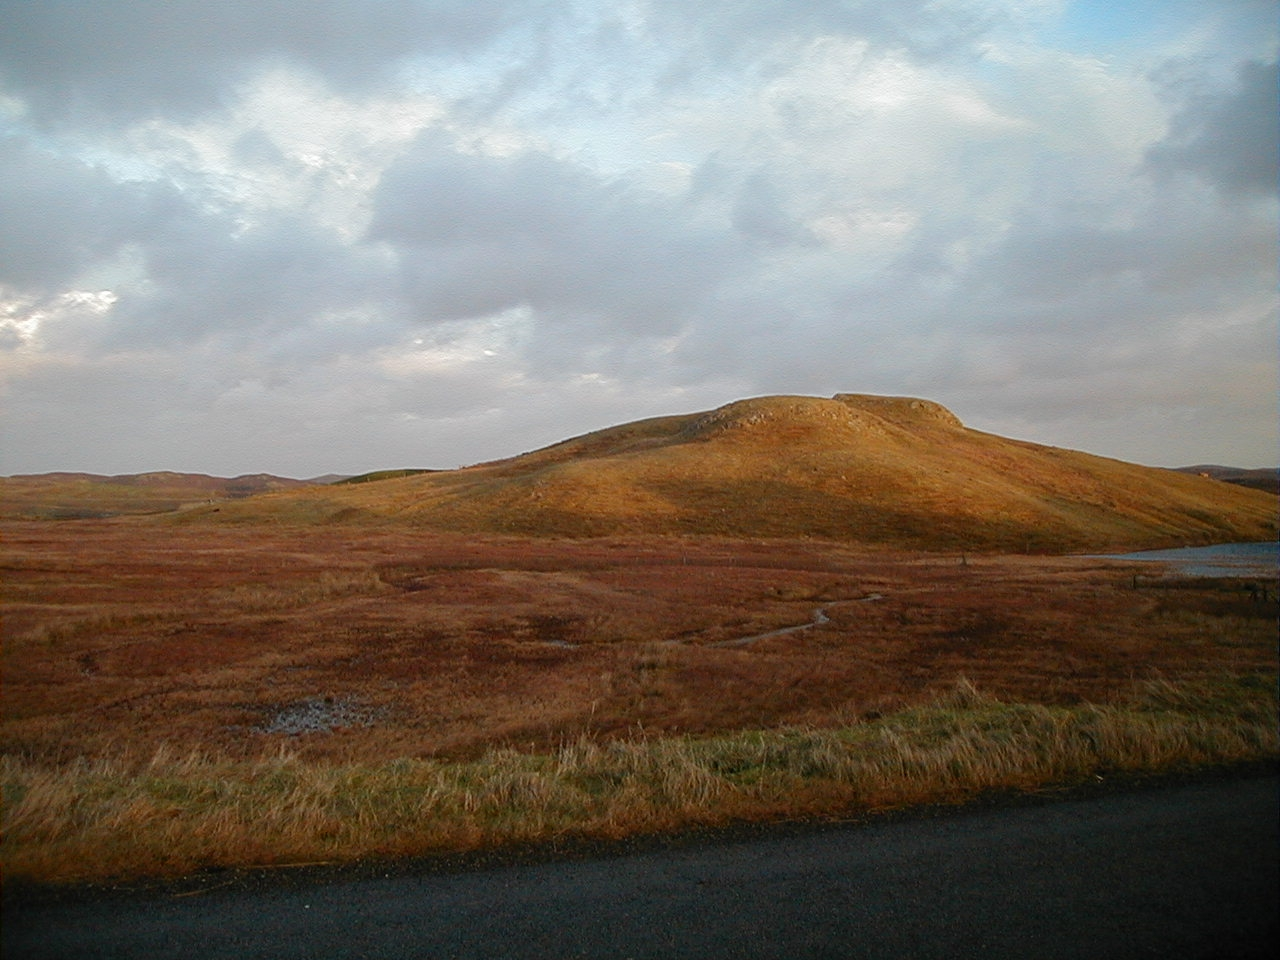 Hill in Habost